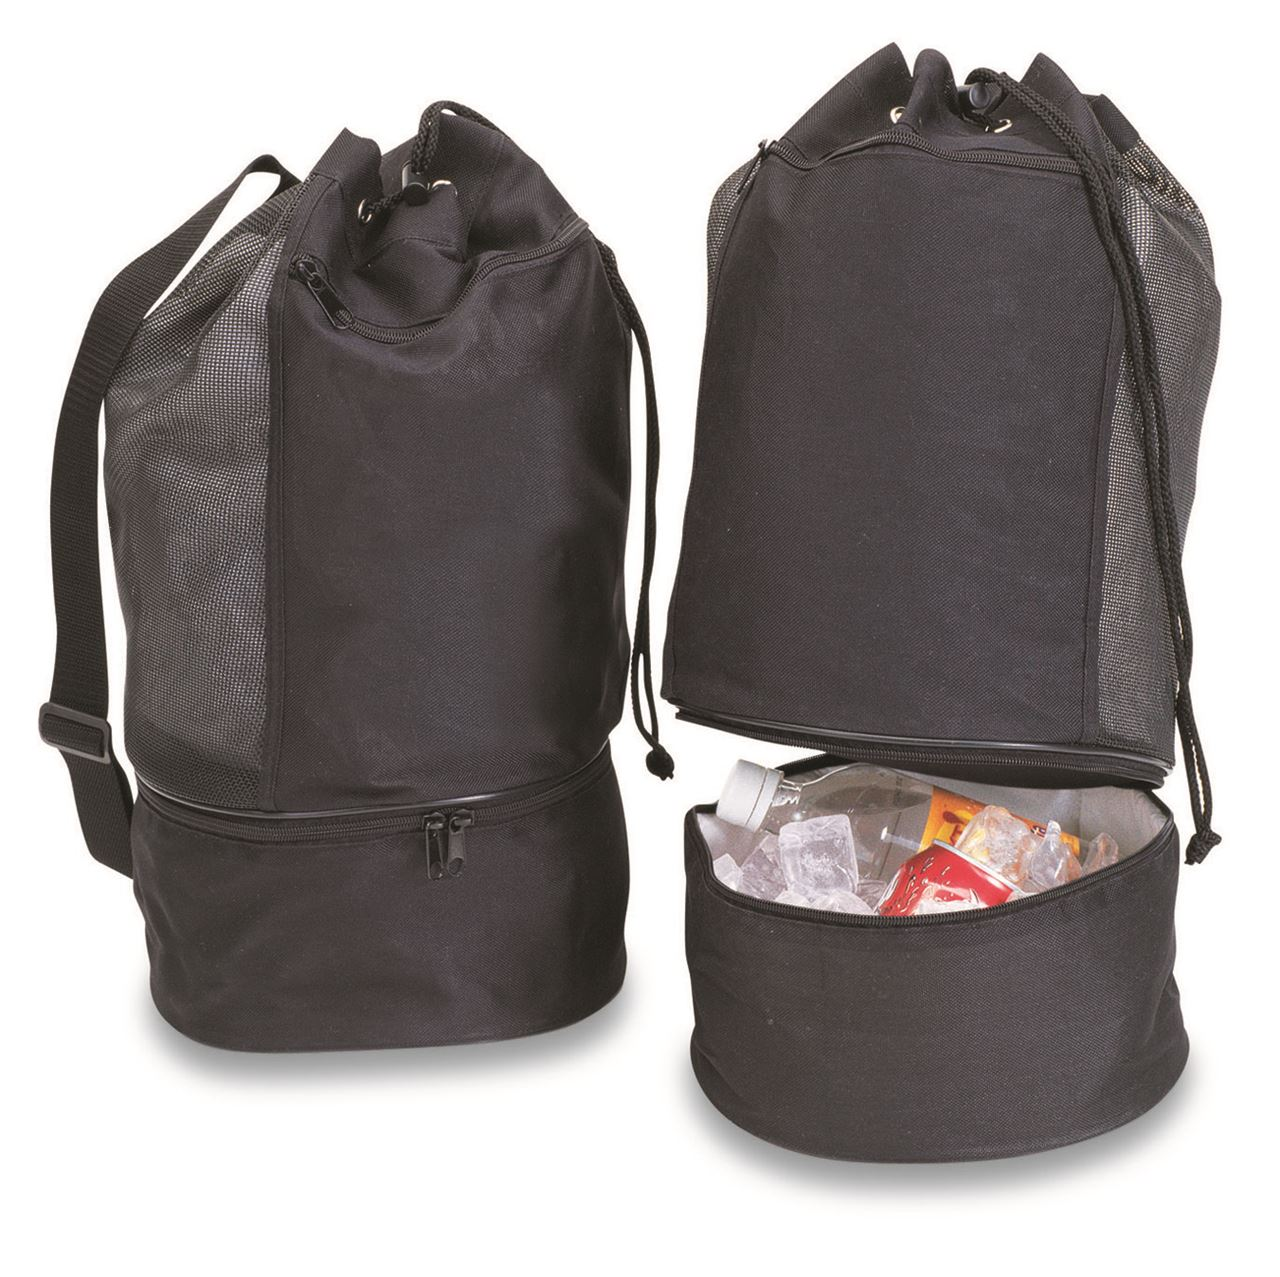 Picture of Beach Tote/Cooler Bag